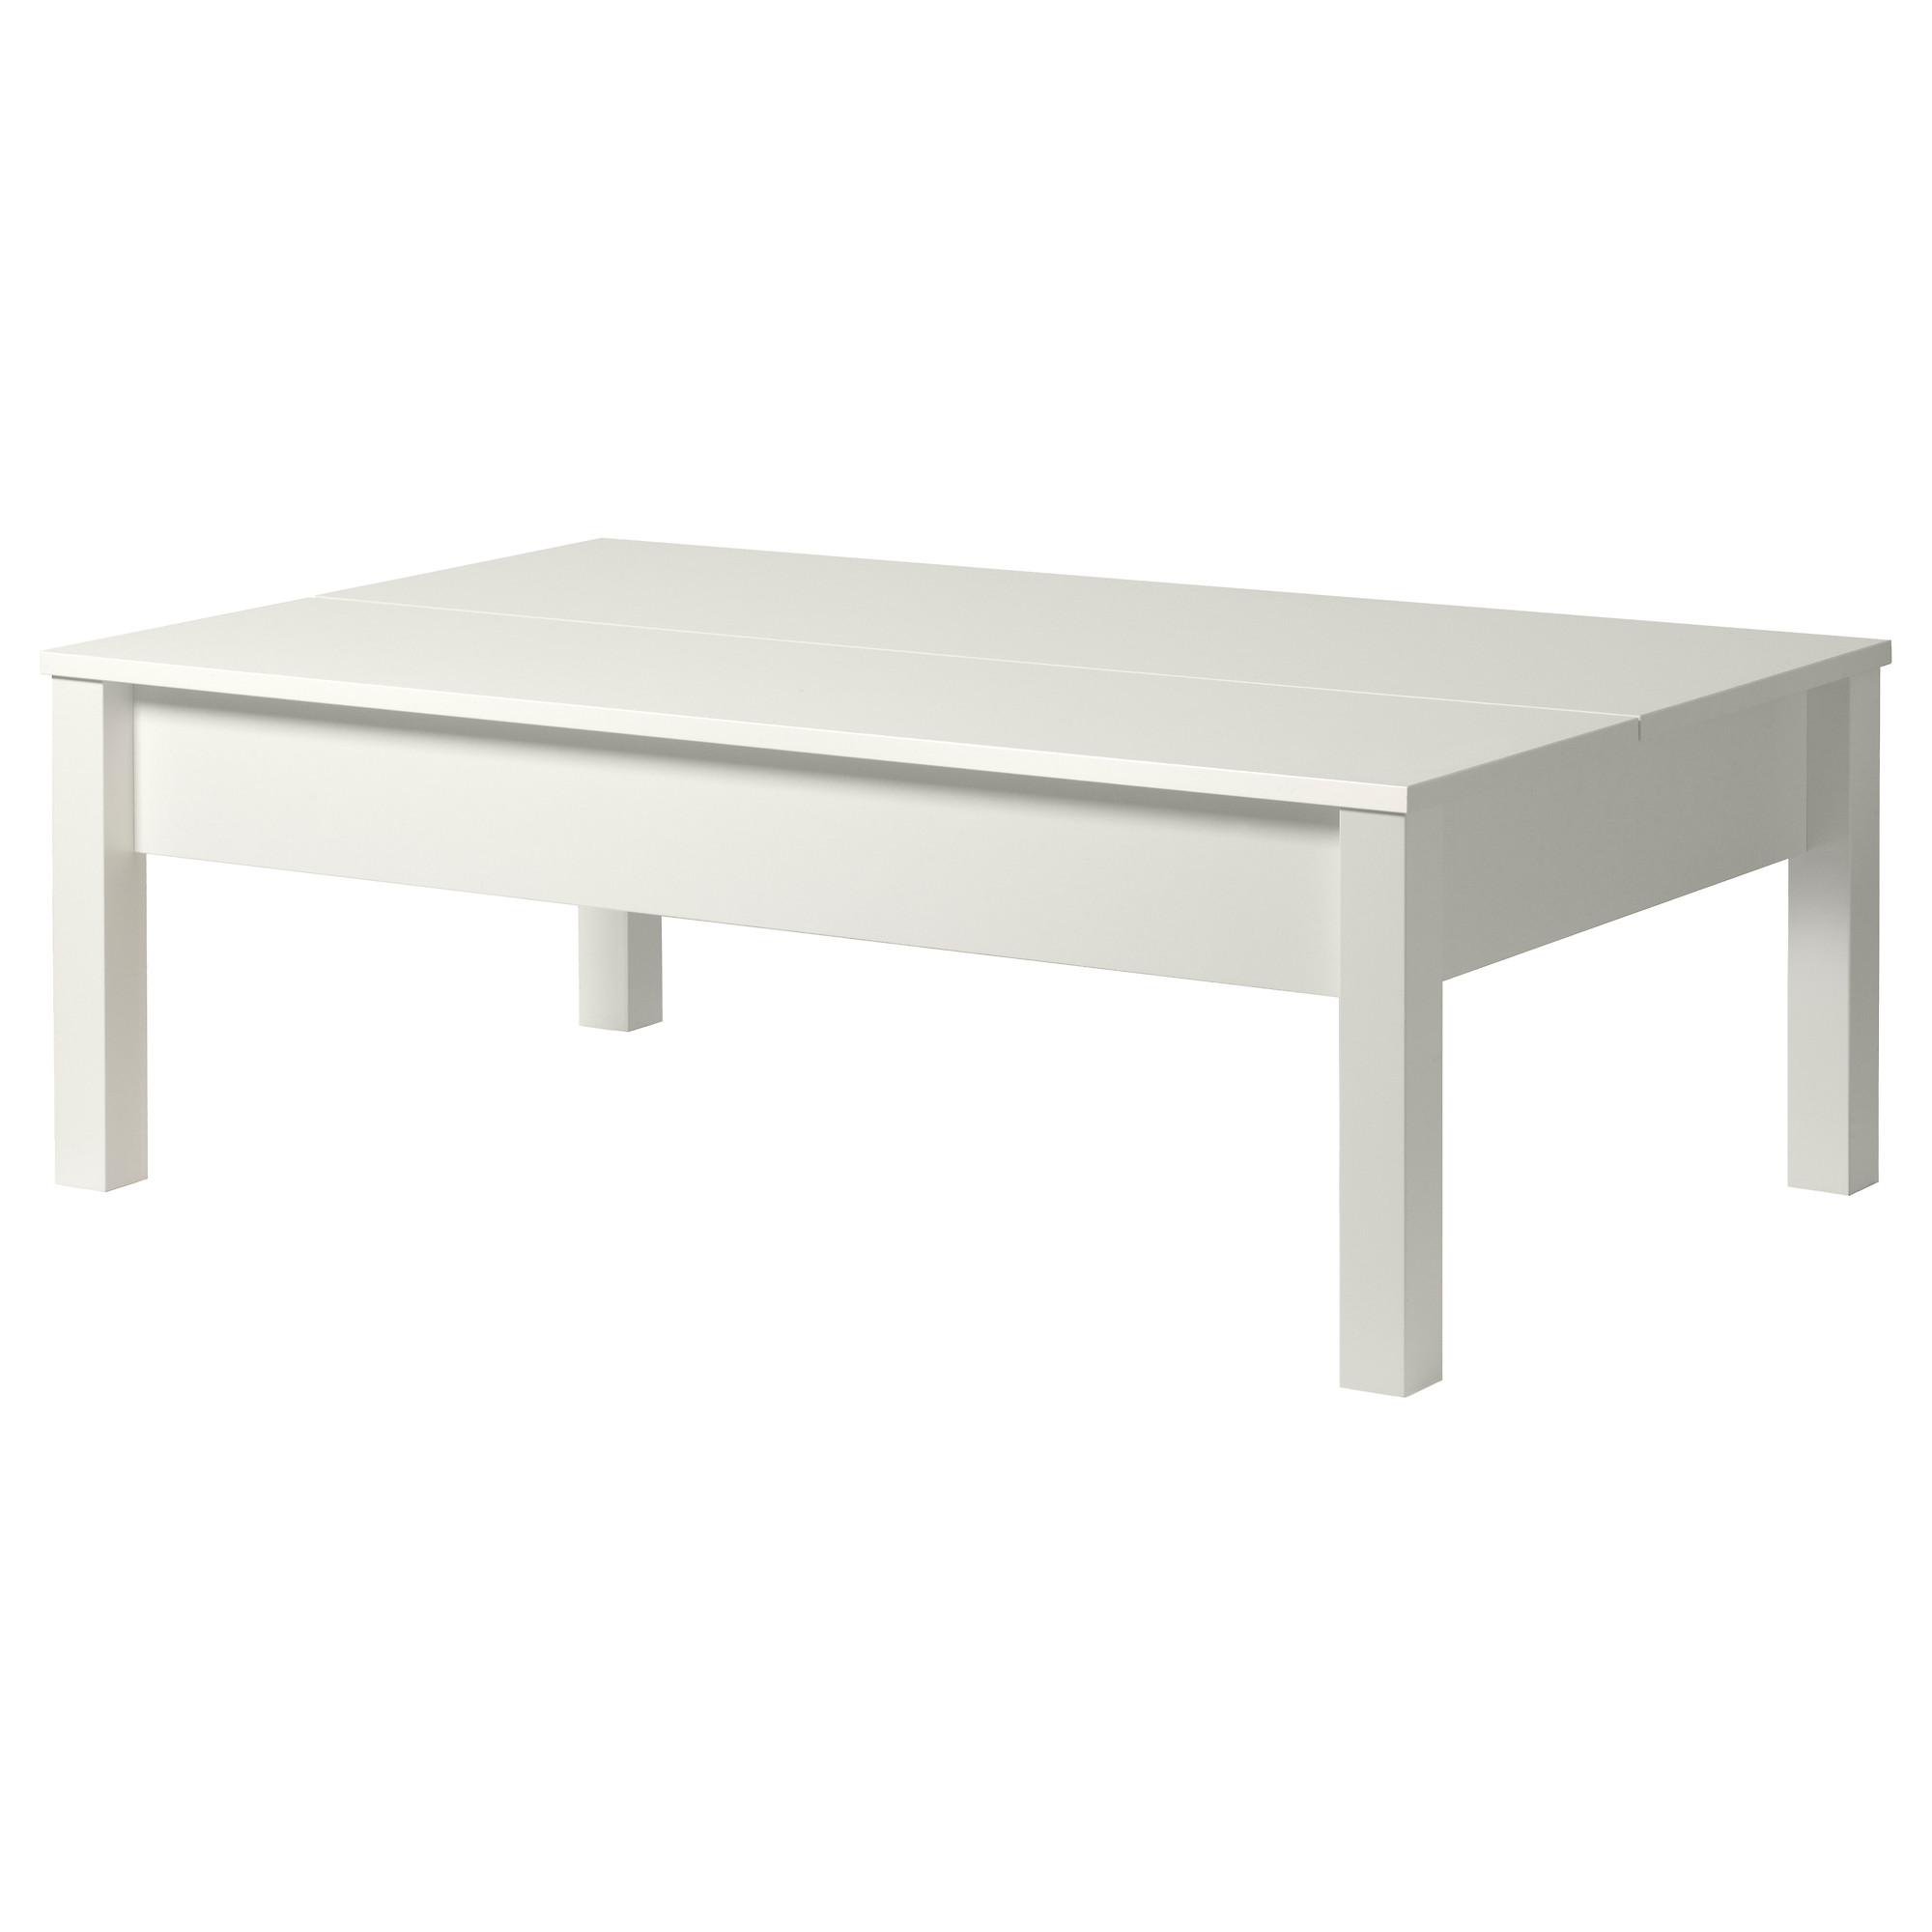 Table basse jardin ikea mobilier design d coration d 39 int rieur - Table basse jardin d ulysse ...